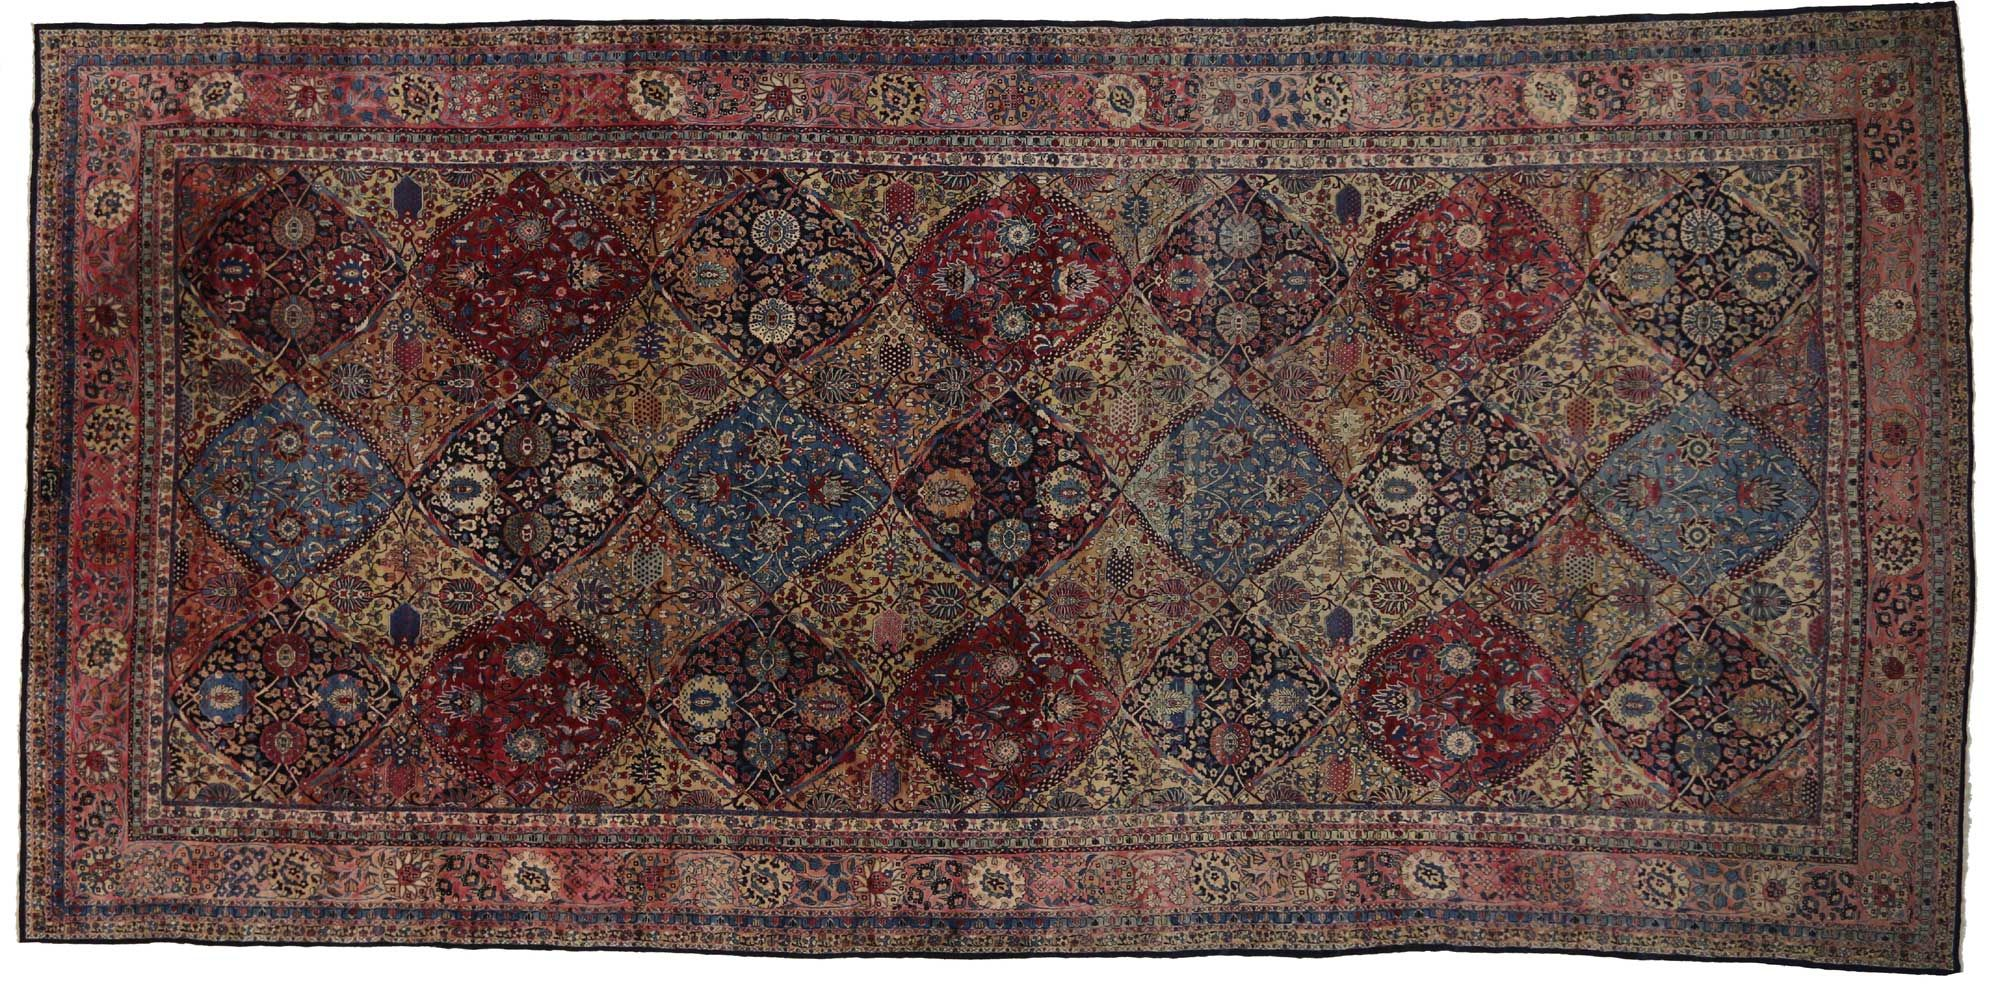 11 X 23 Antique Kerman Palace Rug 76837 Buying Carpet Carpet Runner Cheap Persian Rugs